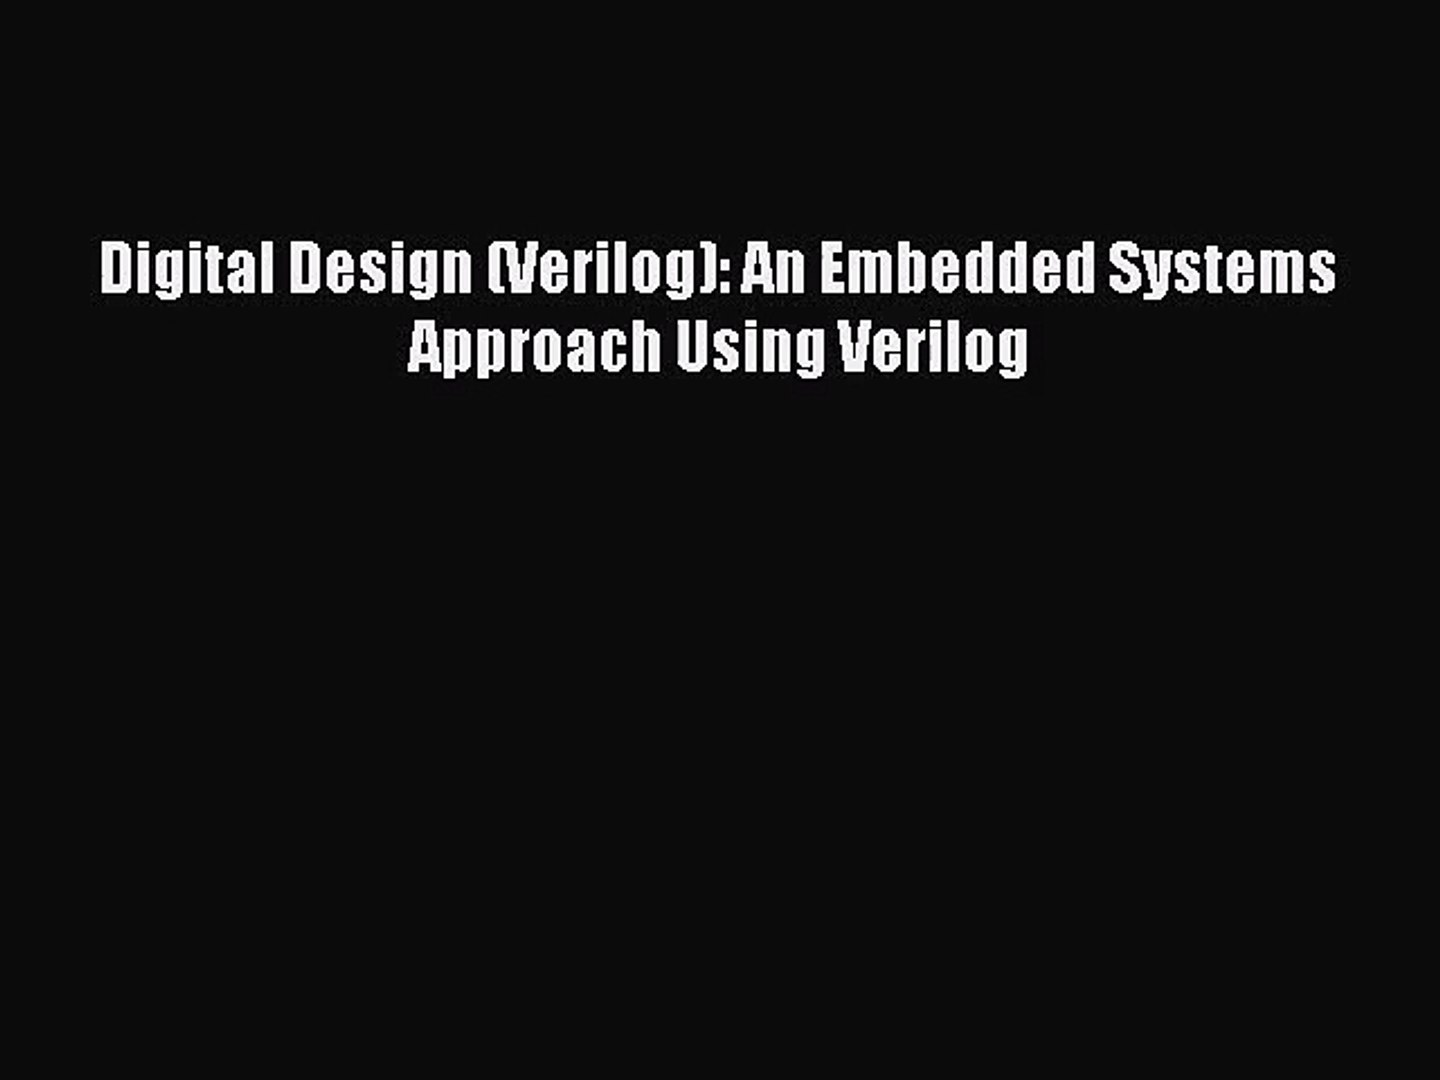 Pdf Download Digital Design Verilog An Embedded Systems Approach Using Verilog Pdf Full Video Dailymotion